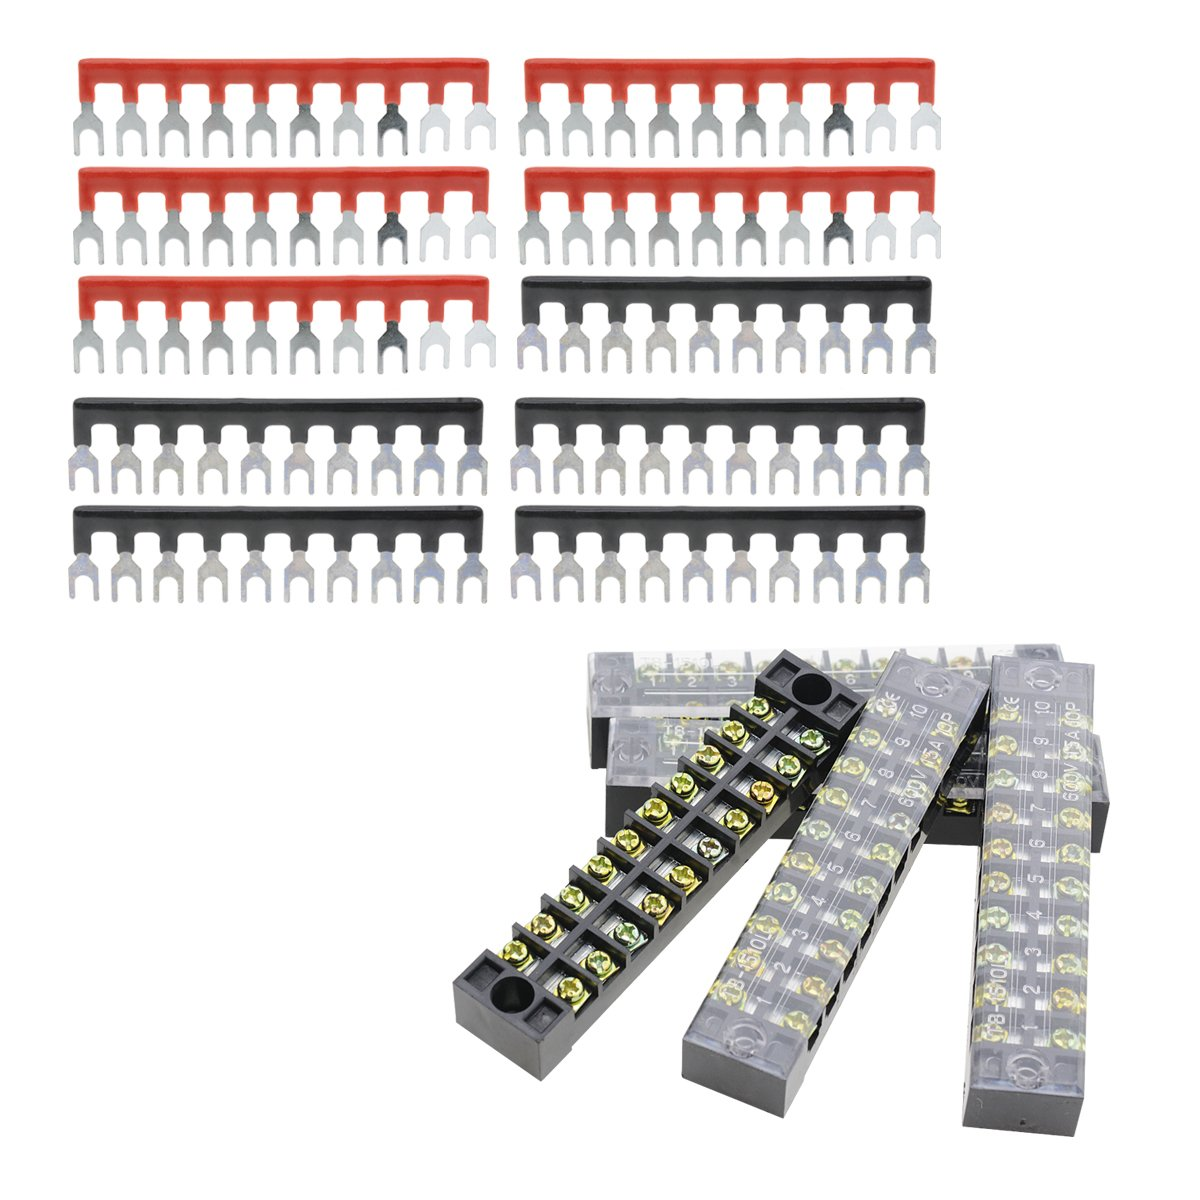 Red Black Pre-Insulated Fork Type Jumper Strip YXQ 600V 15A 10 Positions Double Row Screw Terminal Barrier Strip Block Conector and 15A 10 Positions 5+5